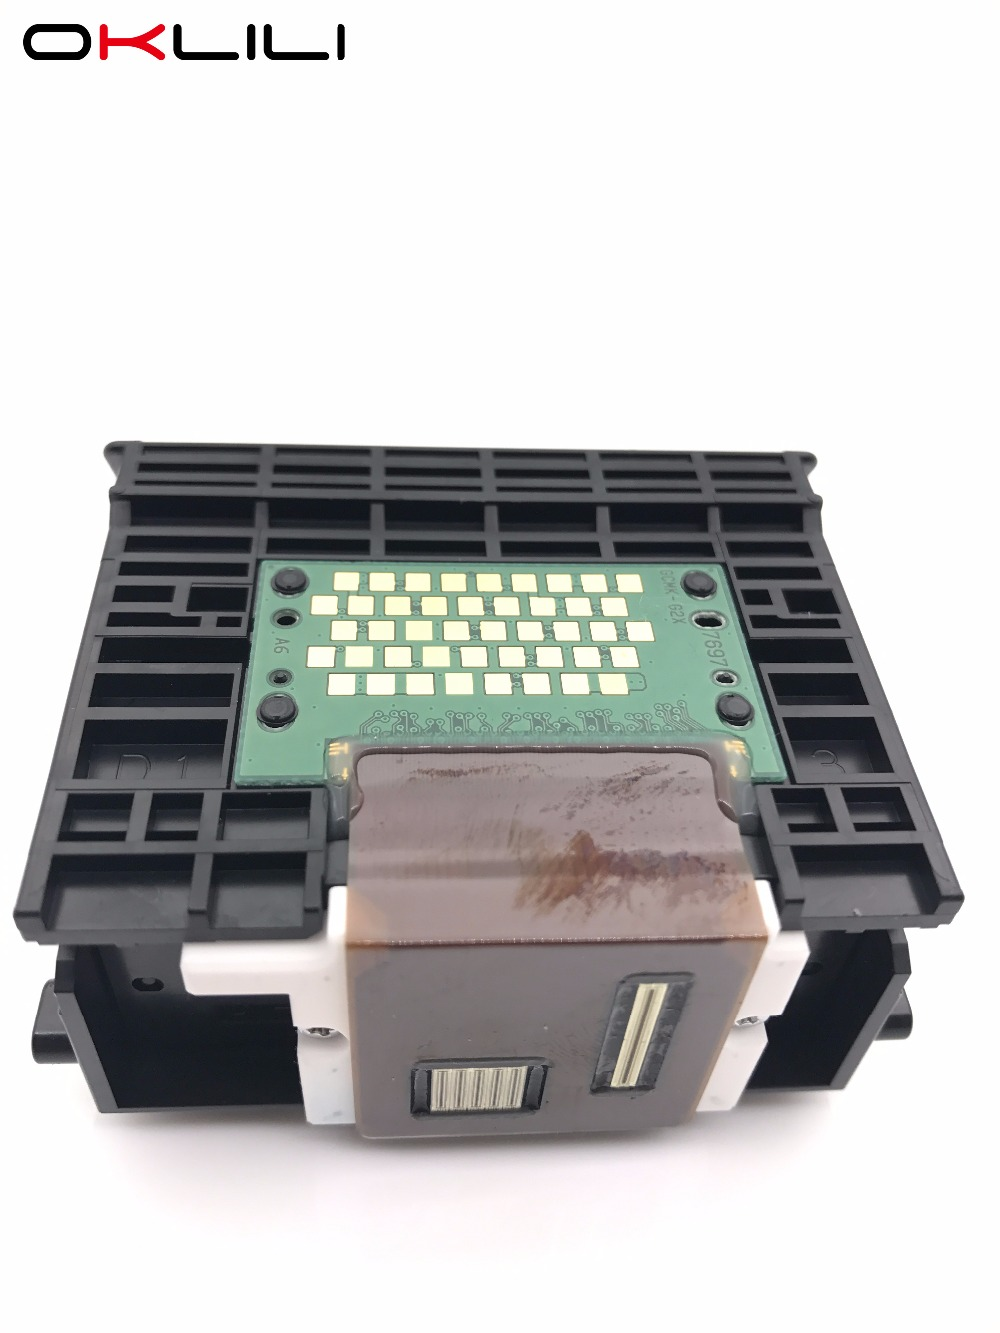 OKLILI ORIGINAL QY6-0070 QY6-0070-000 Printhead Print Head Printer Head for Canon MP510 MP520 MX700 iP3300 iP3500 new original print head qy6 0061 00 printhead for canon ip4300 ip5200 ip5200r mp600 mp600r mp800 mp800r mp830 plotter